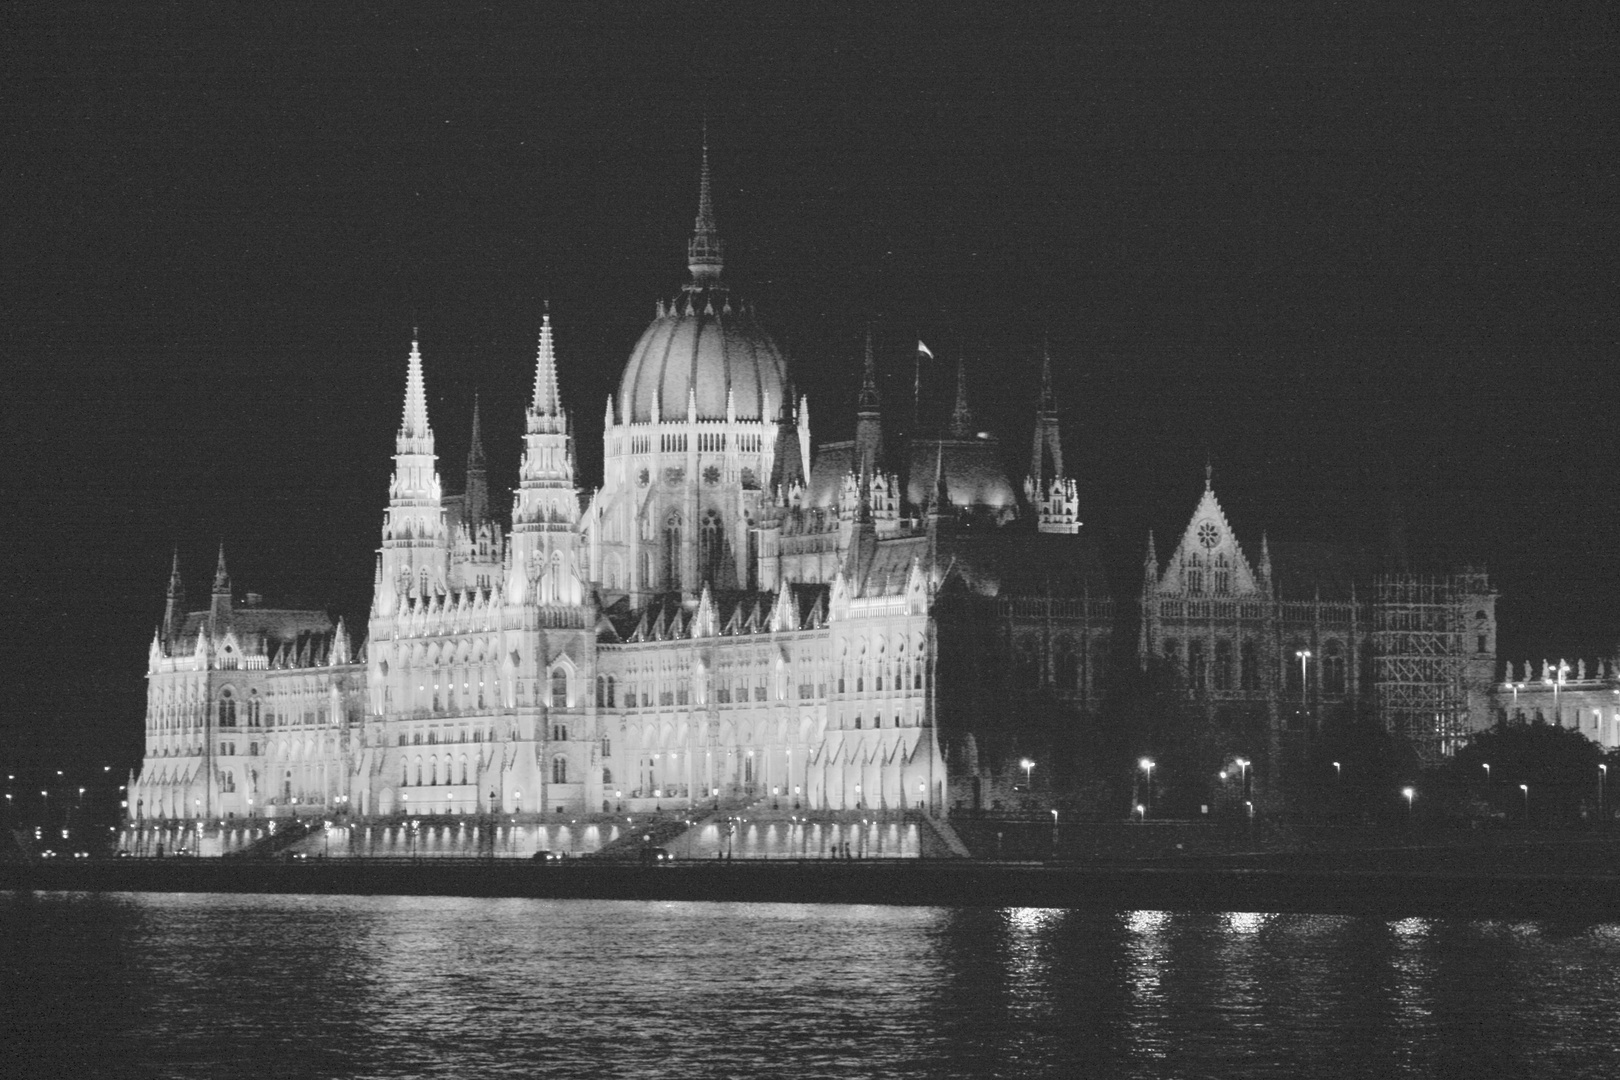 Parlament in Budapest in der Nacht  (low contrast)